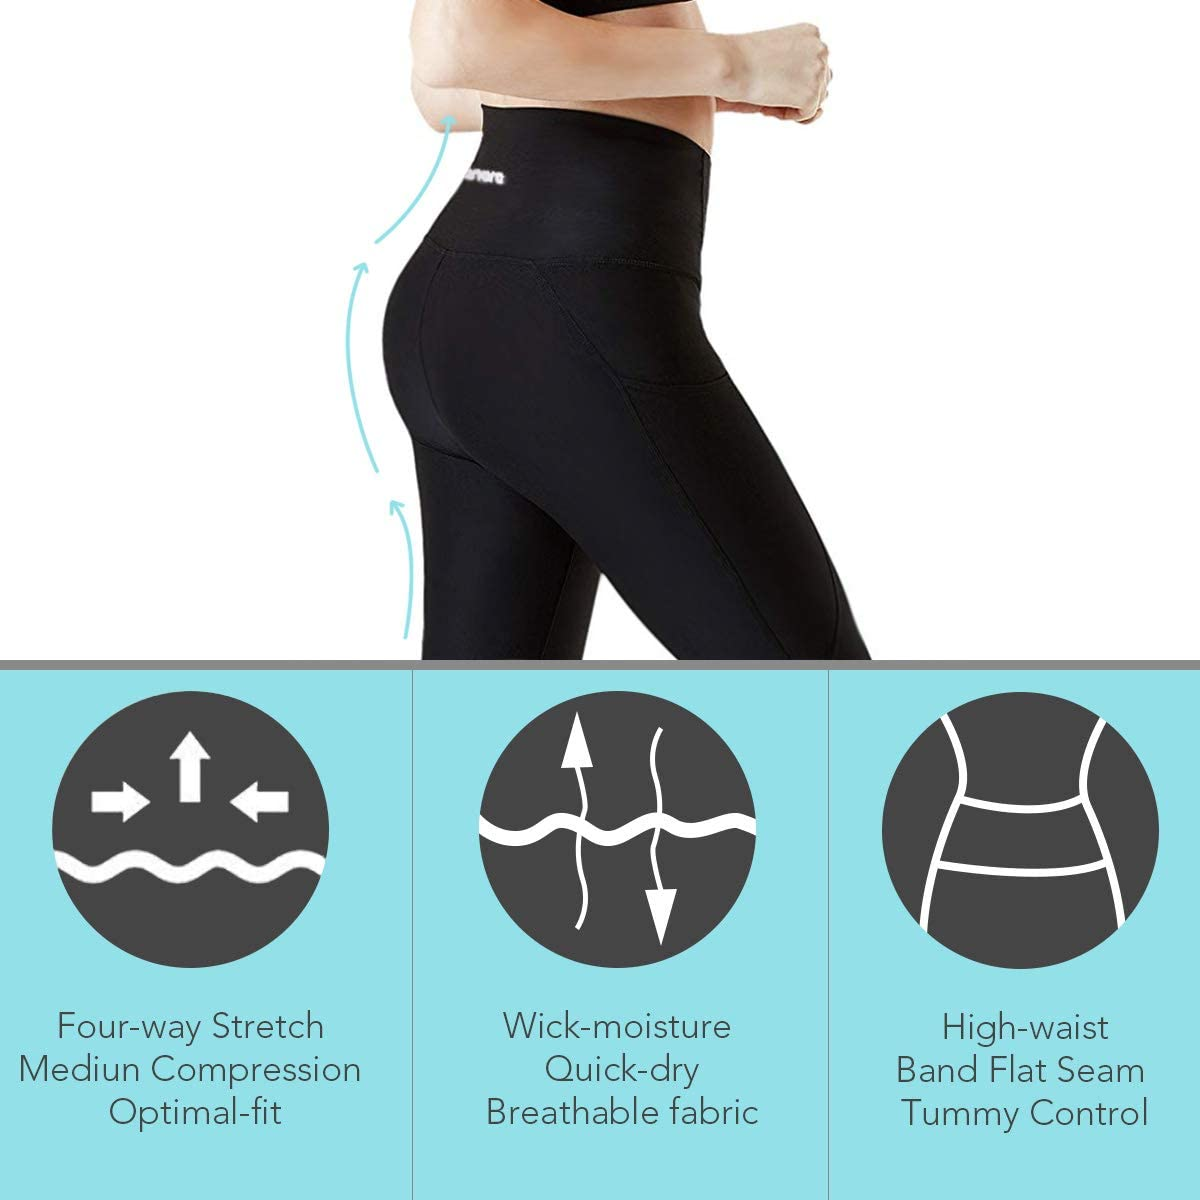 Plus Size Leggings Non See-Through Workout Running Tights 4 Way Stretch Ufanore High Waist Yoga Pants for Women Tummy Control Yoga Pants with Pockets